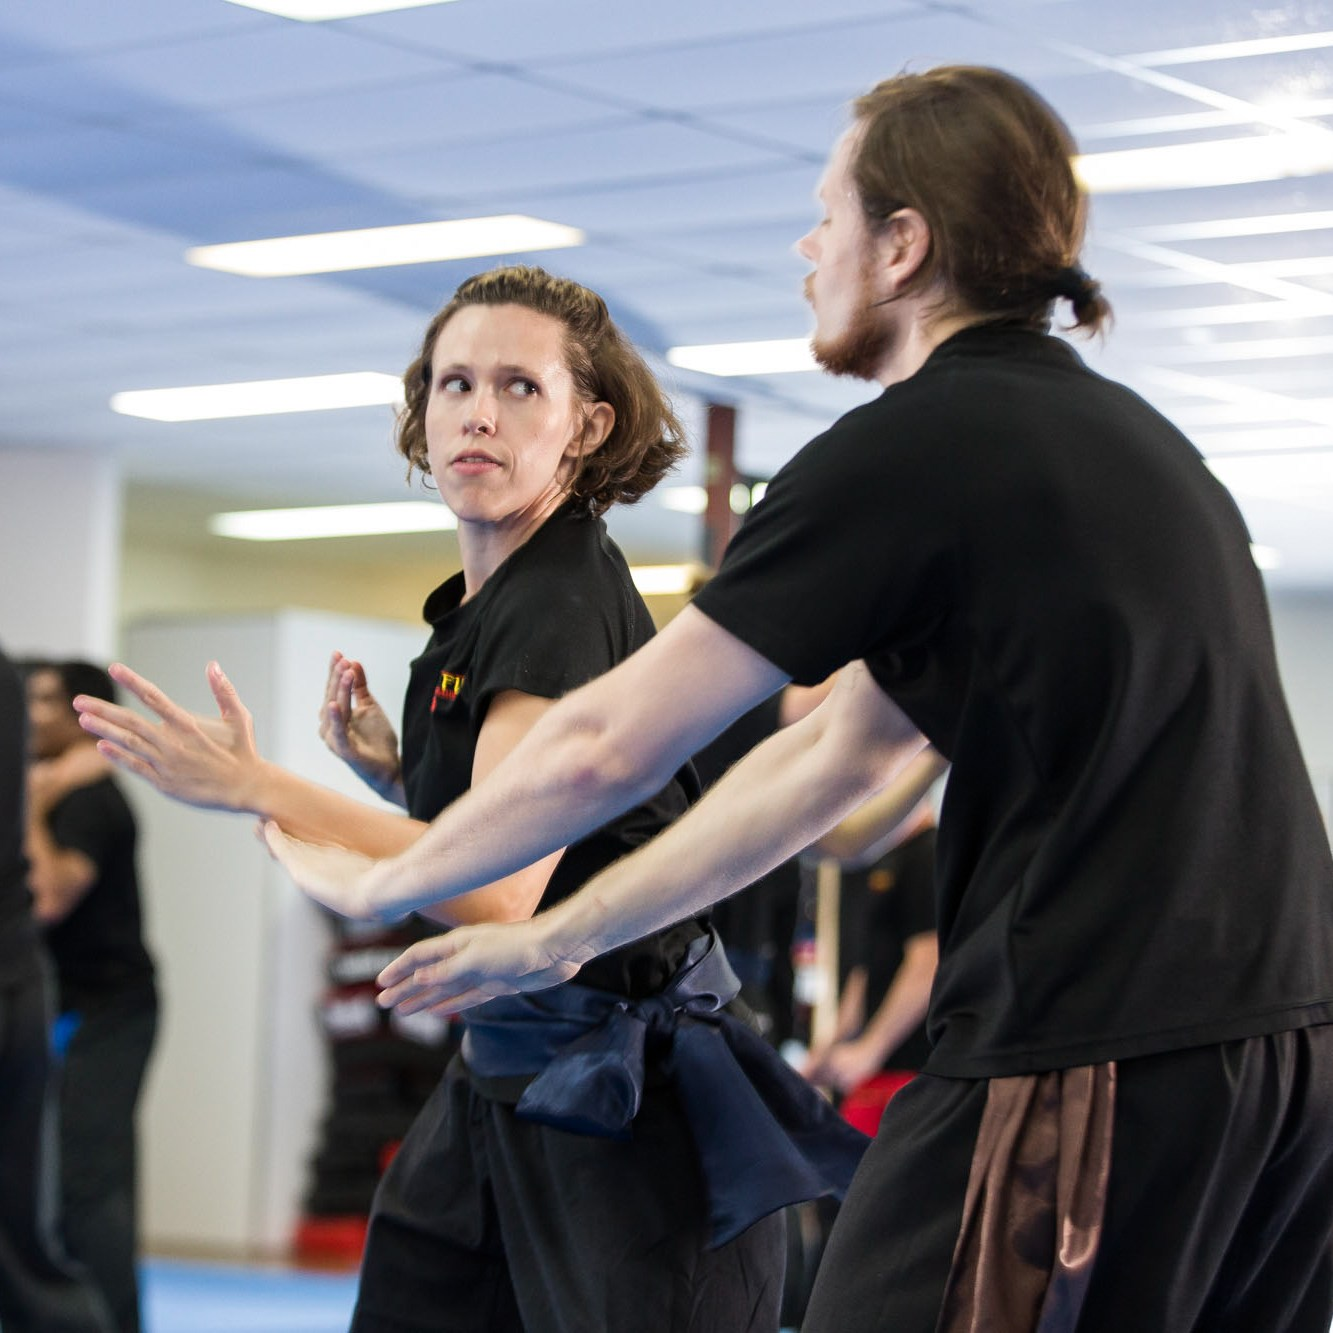 Young woman practicing Kung fu Self defence against throat grab.